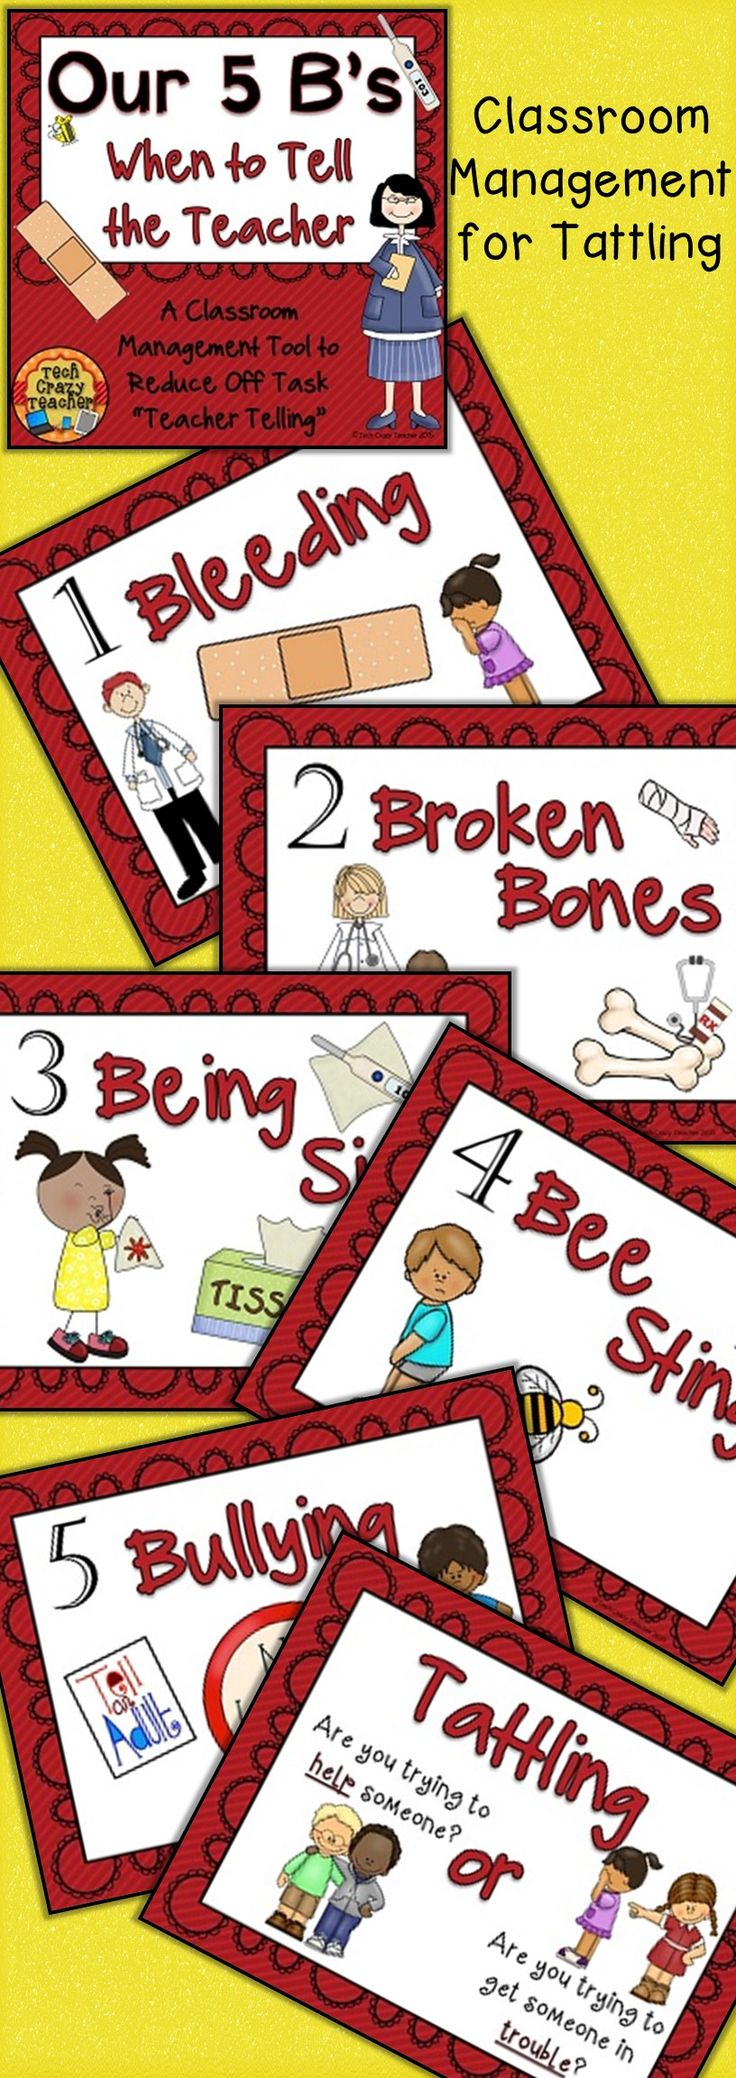 """Tired of your students running up and telling you every little thing? Trouble with tattling? Do you have students that need a Band-Aid for a teeny-tiny speck? Teach your students the 5 B's! The 5 B's is a classroom management tool meant to reduce off task """"teacher telling"""" and tattling. The 5 B's help your students know when it's appropriate to go to the teacher and what things a teacher needs to know about. $"""